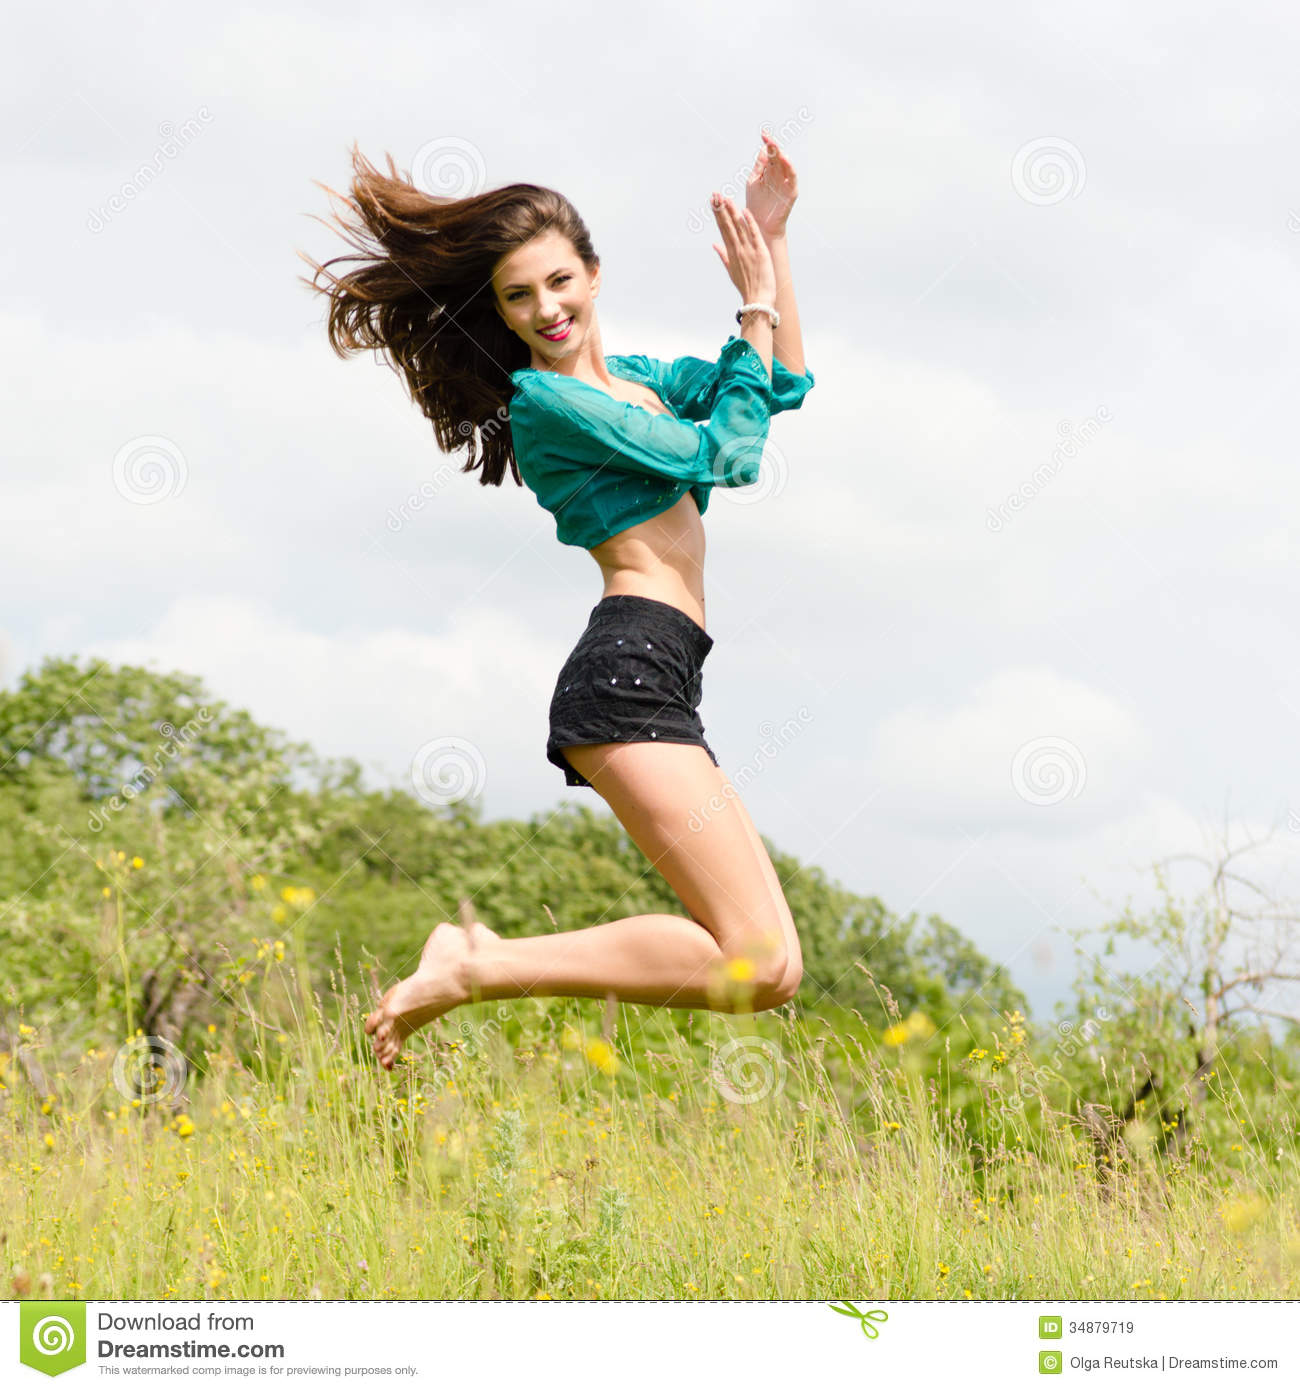 beautiful-young-happy-woman-dancing-jumping-outdoors-summer-day-smiling-looking-camera-girl-high-background-34879719.jpg